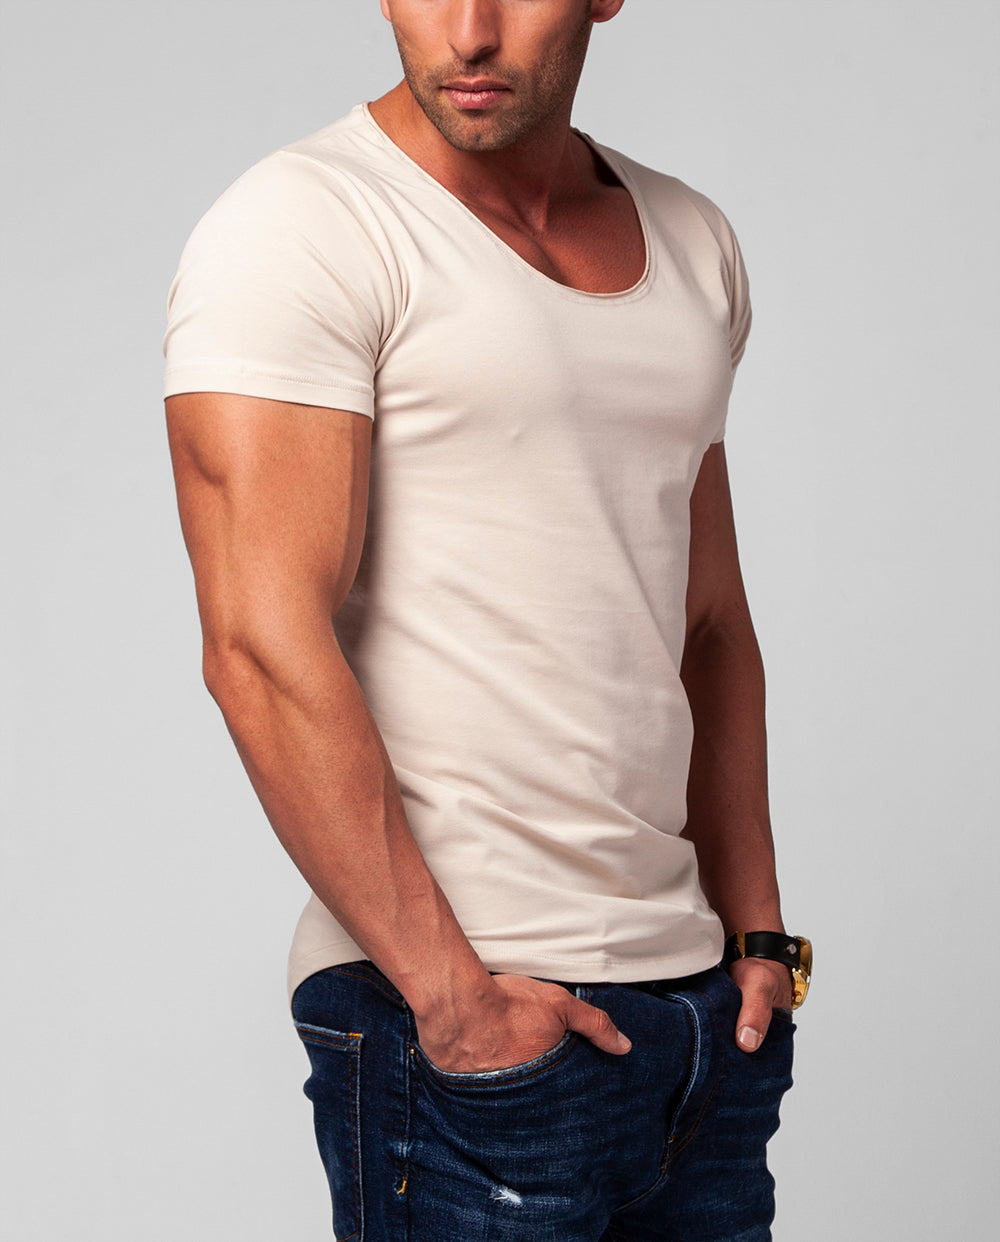 Men's Plain Light Beige Scoop Neck T-shirt - Champagne